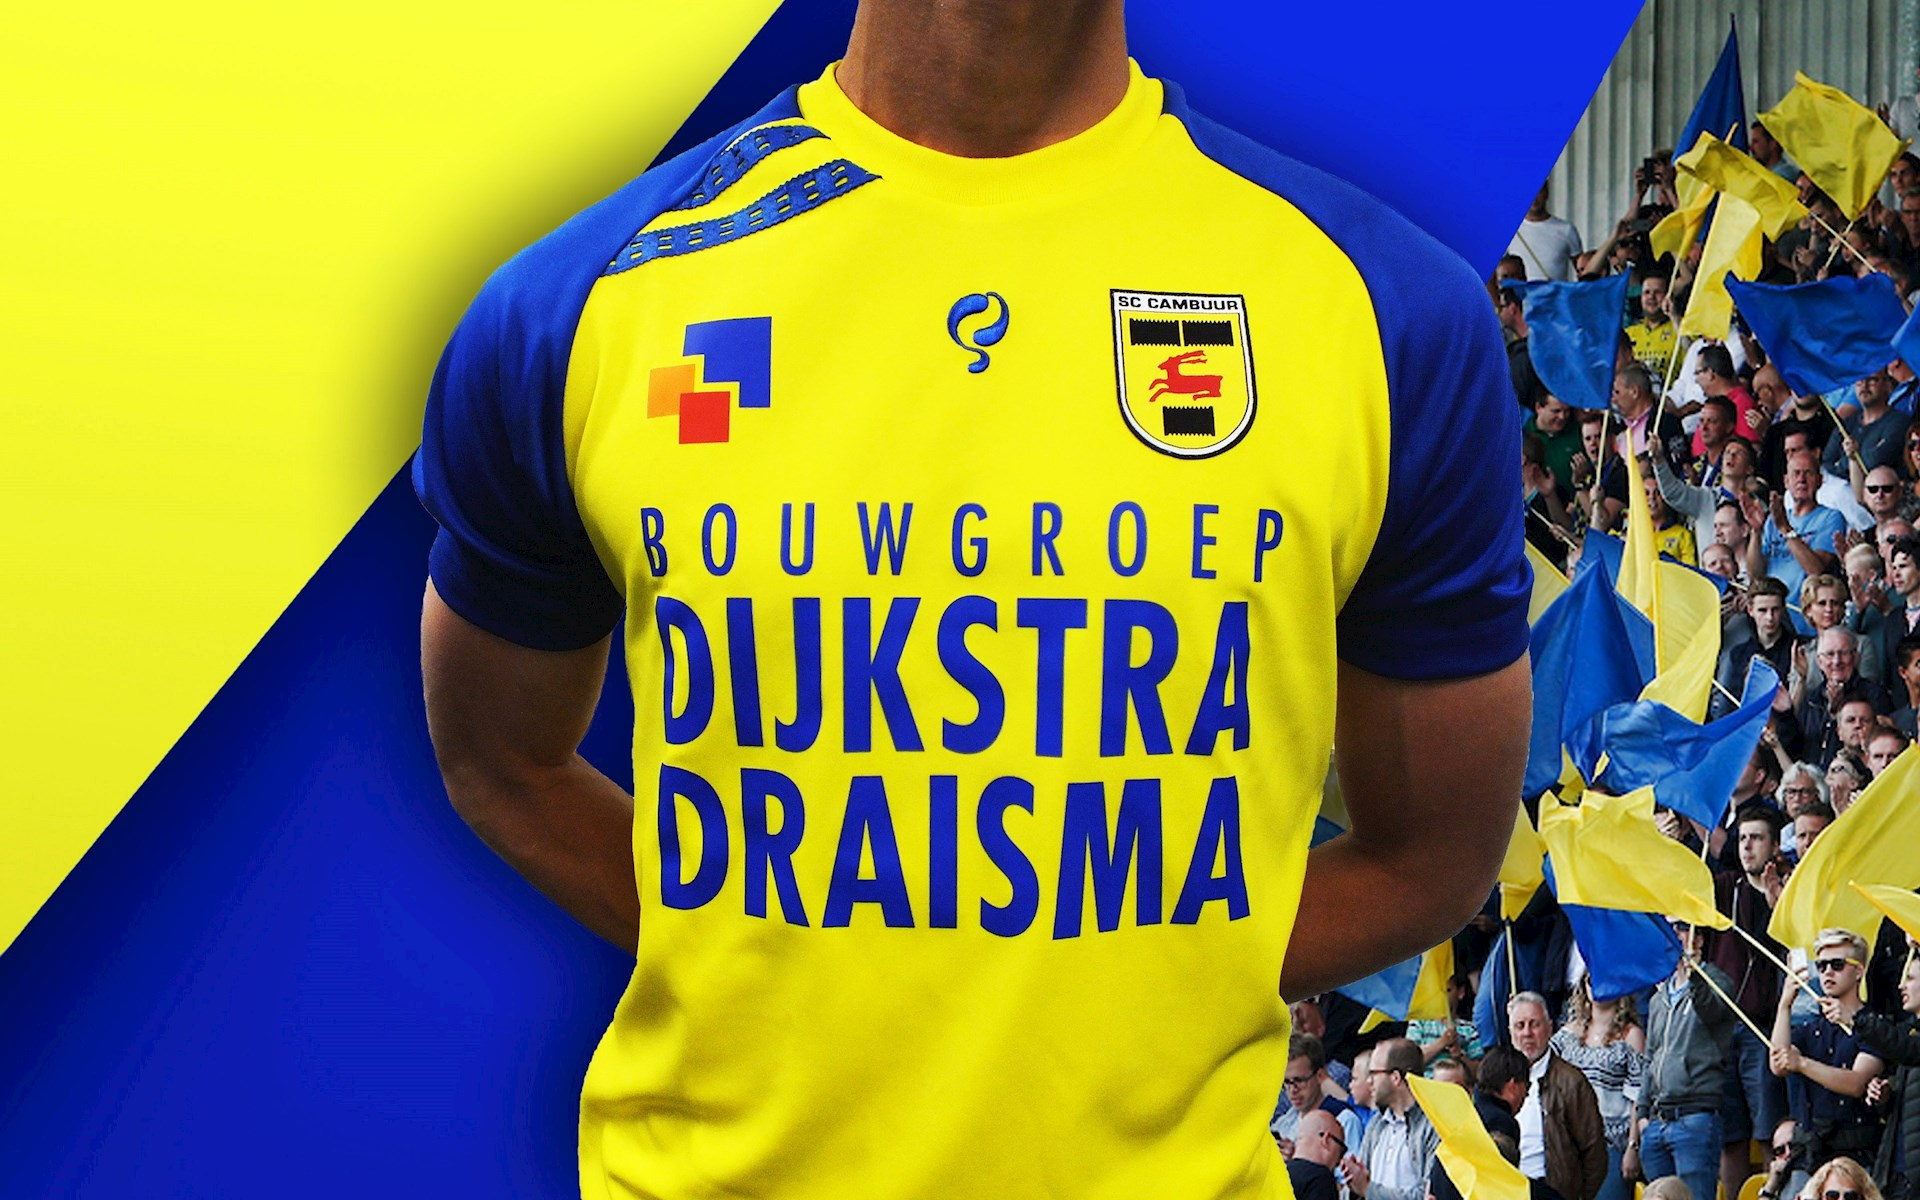 sc cambuur voetbalshirts 2017 2018 voetbalshirts